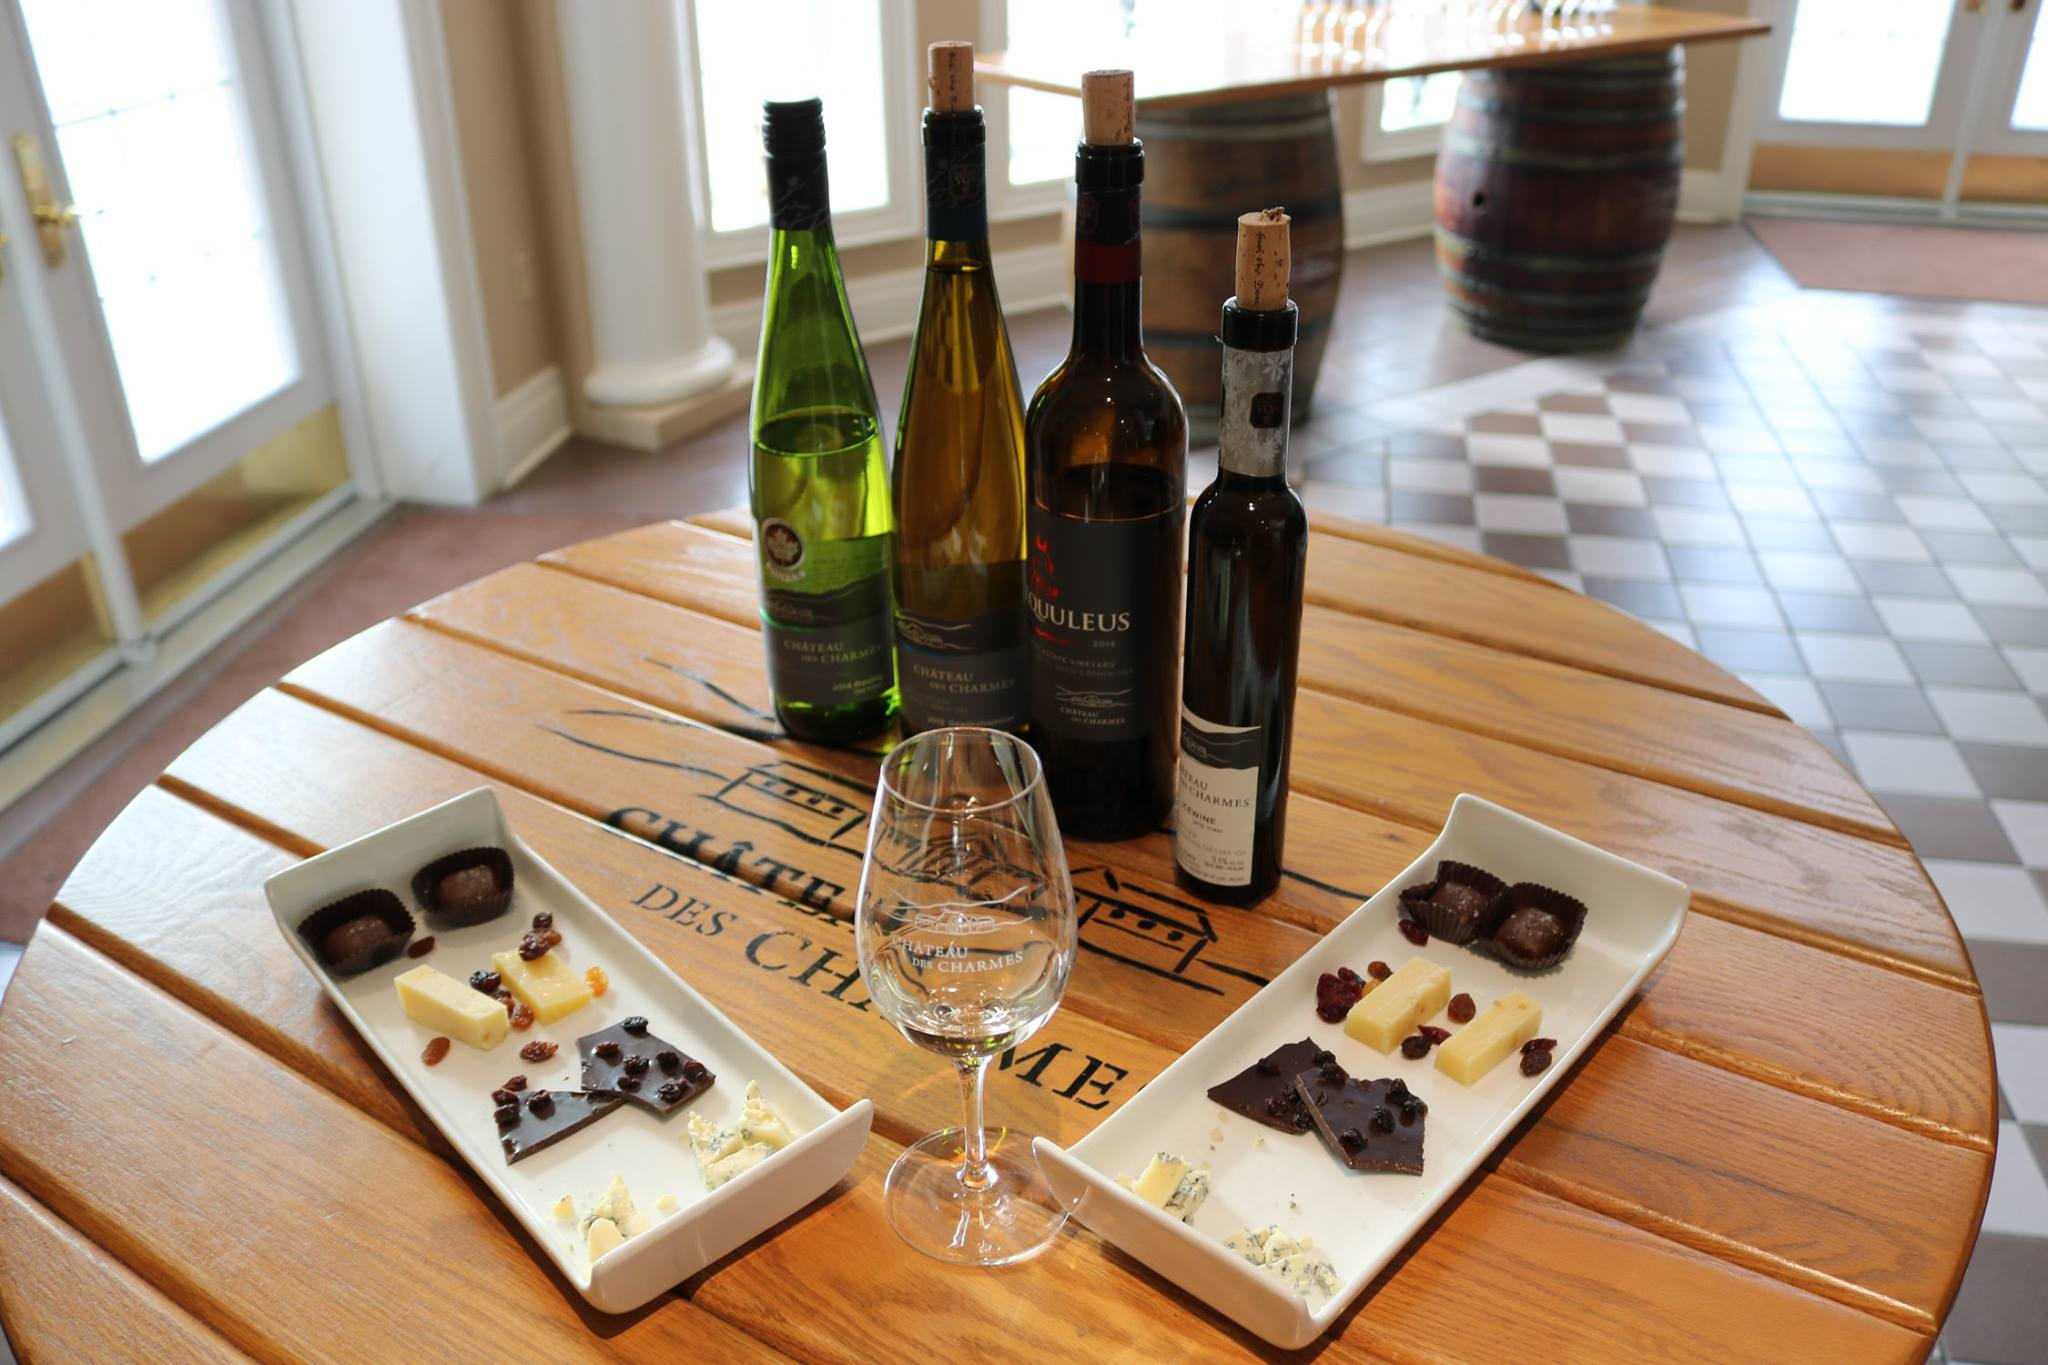 Rent a charter bus to get to Château des Charmes, and enjoy a sweet and salty smorgasboard, perfectly paired with their wine selection.